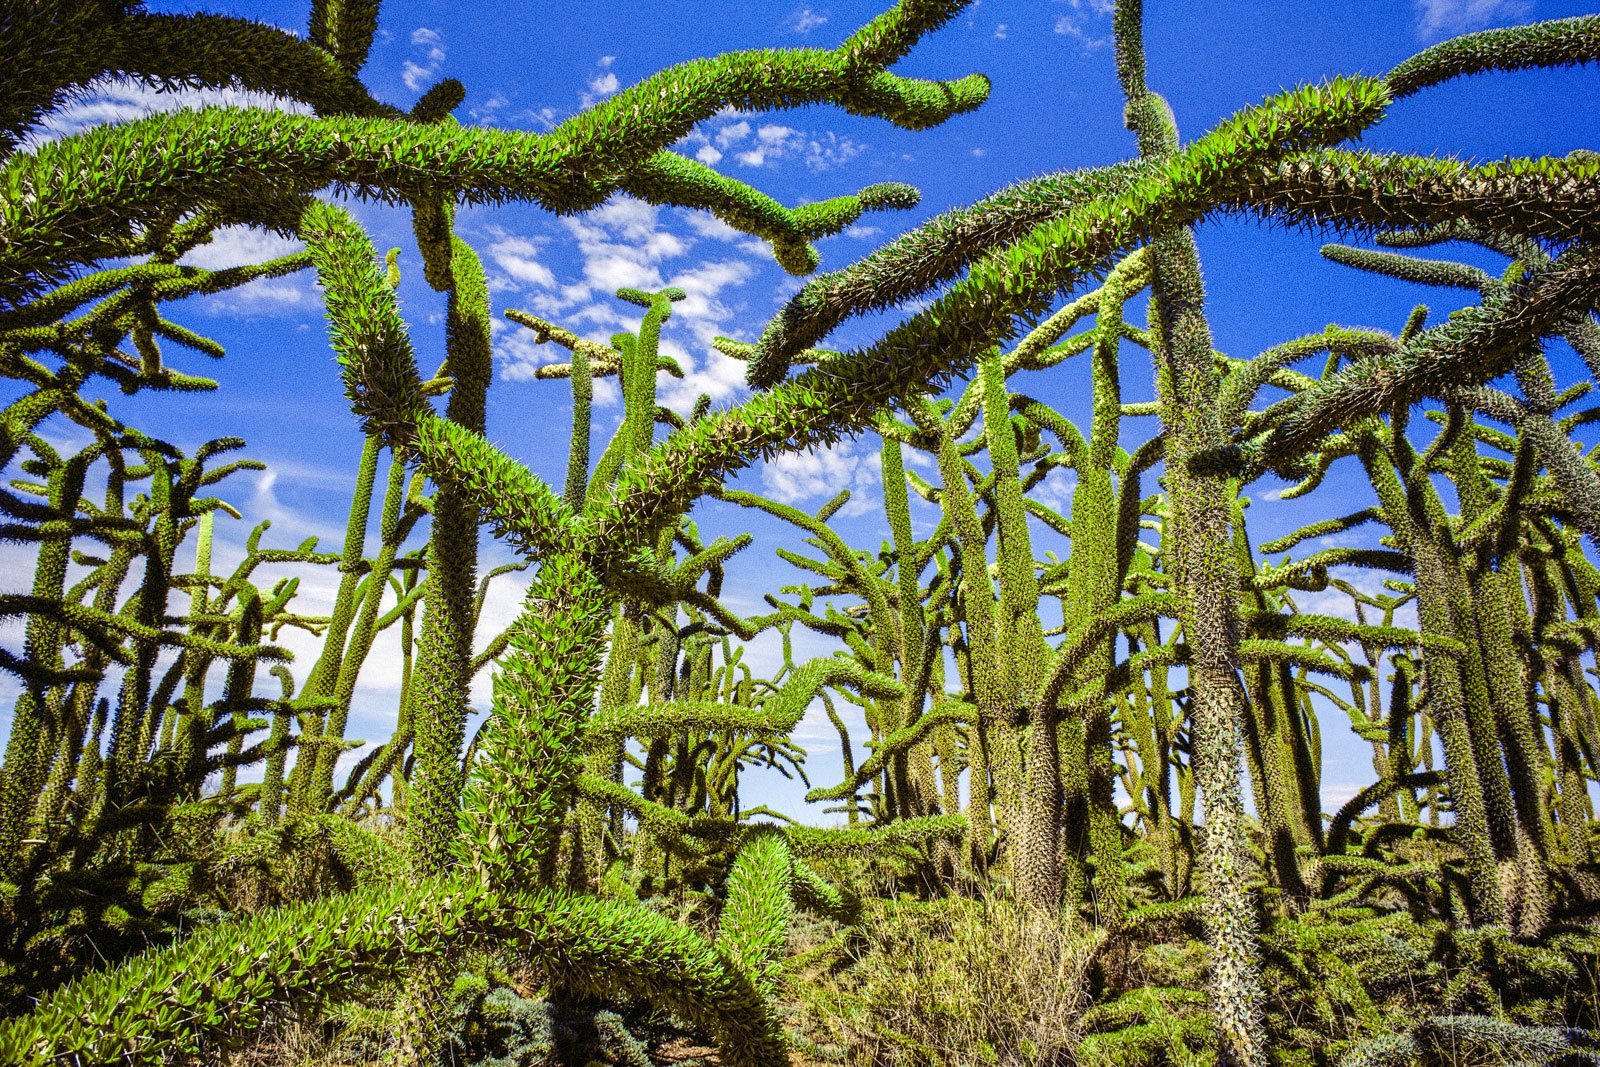 Octopus trees in spiny desert, Southern Madagascar